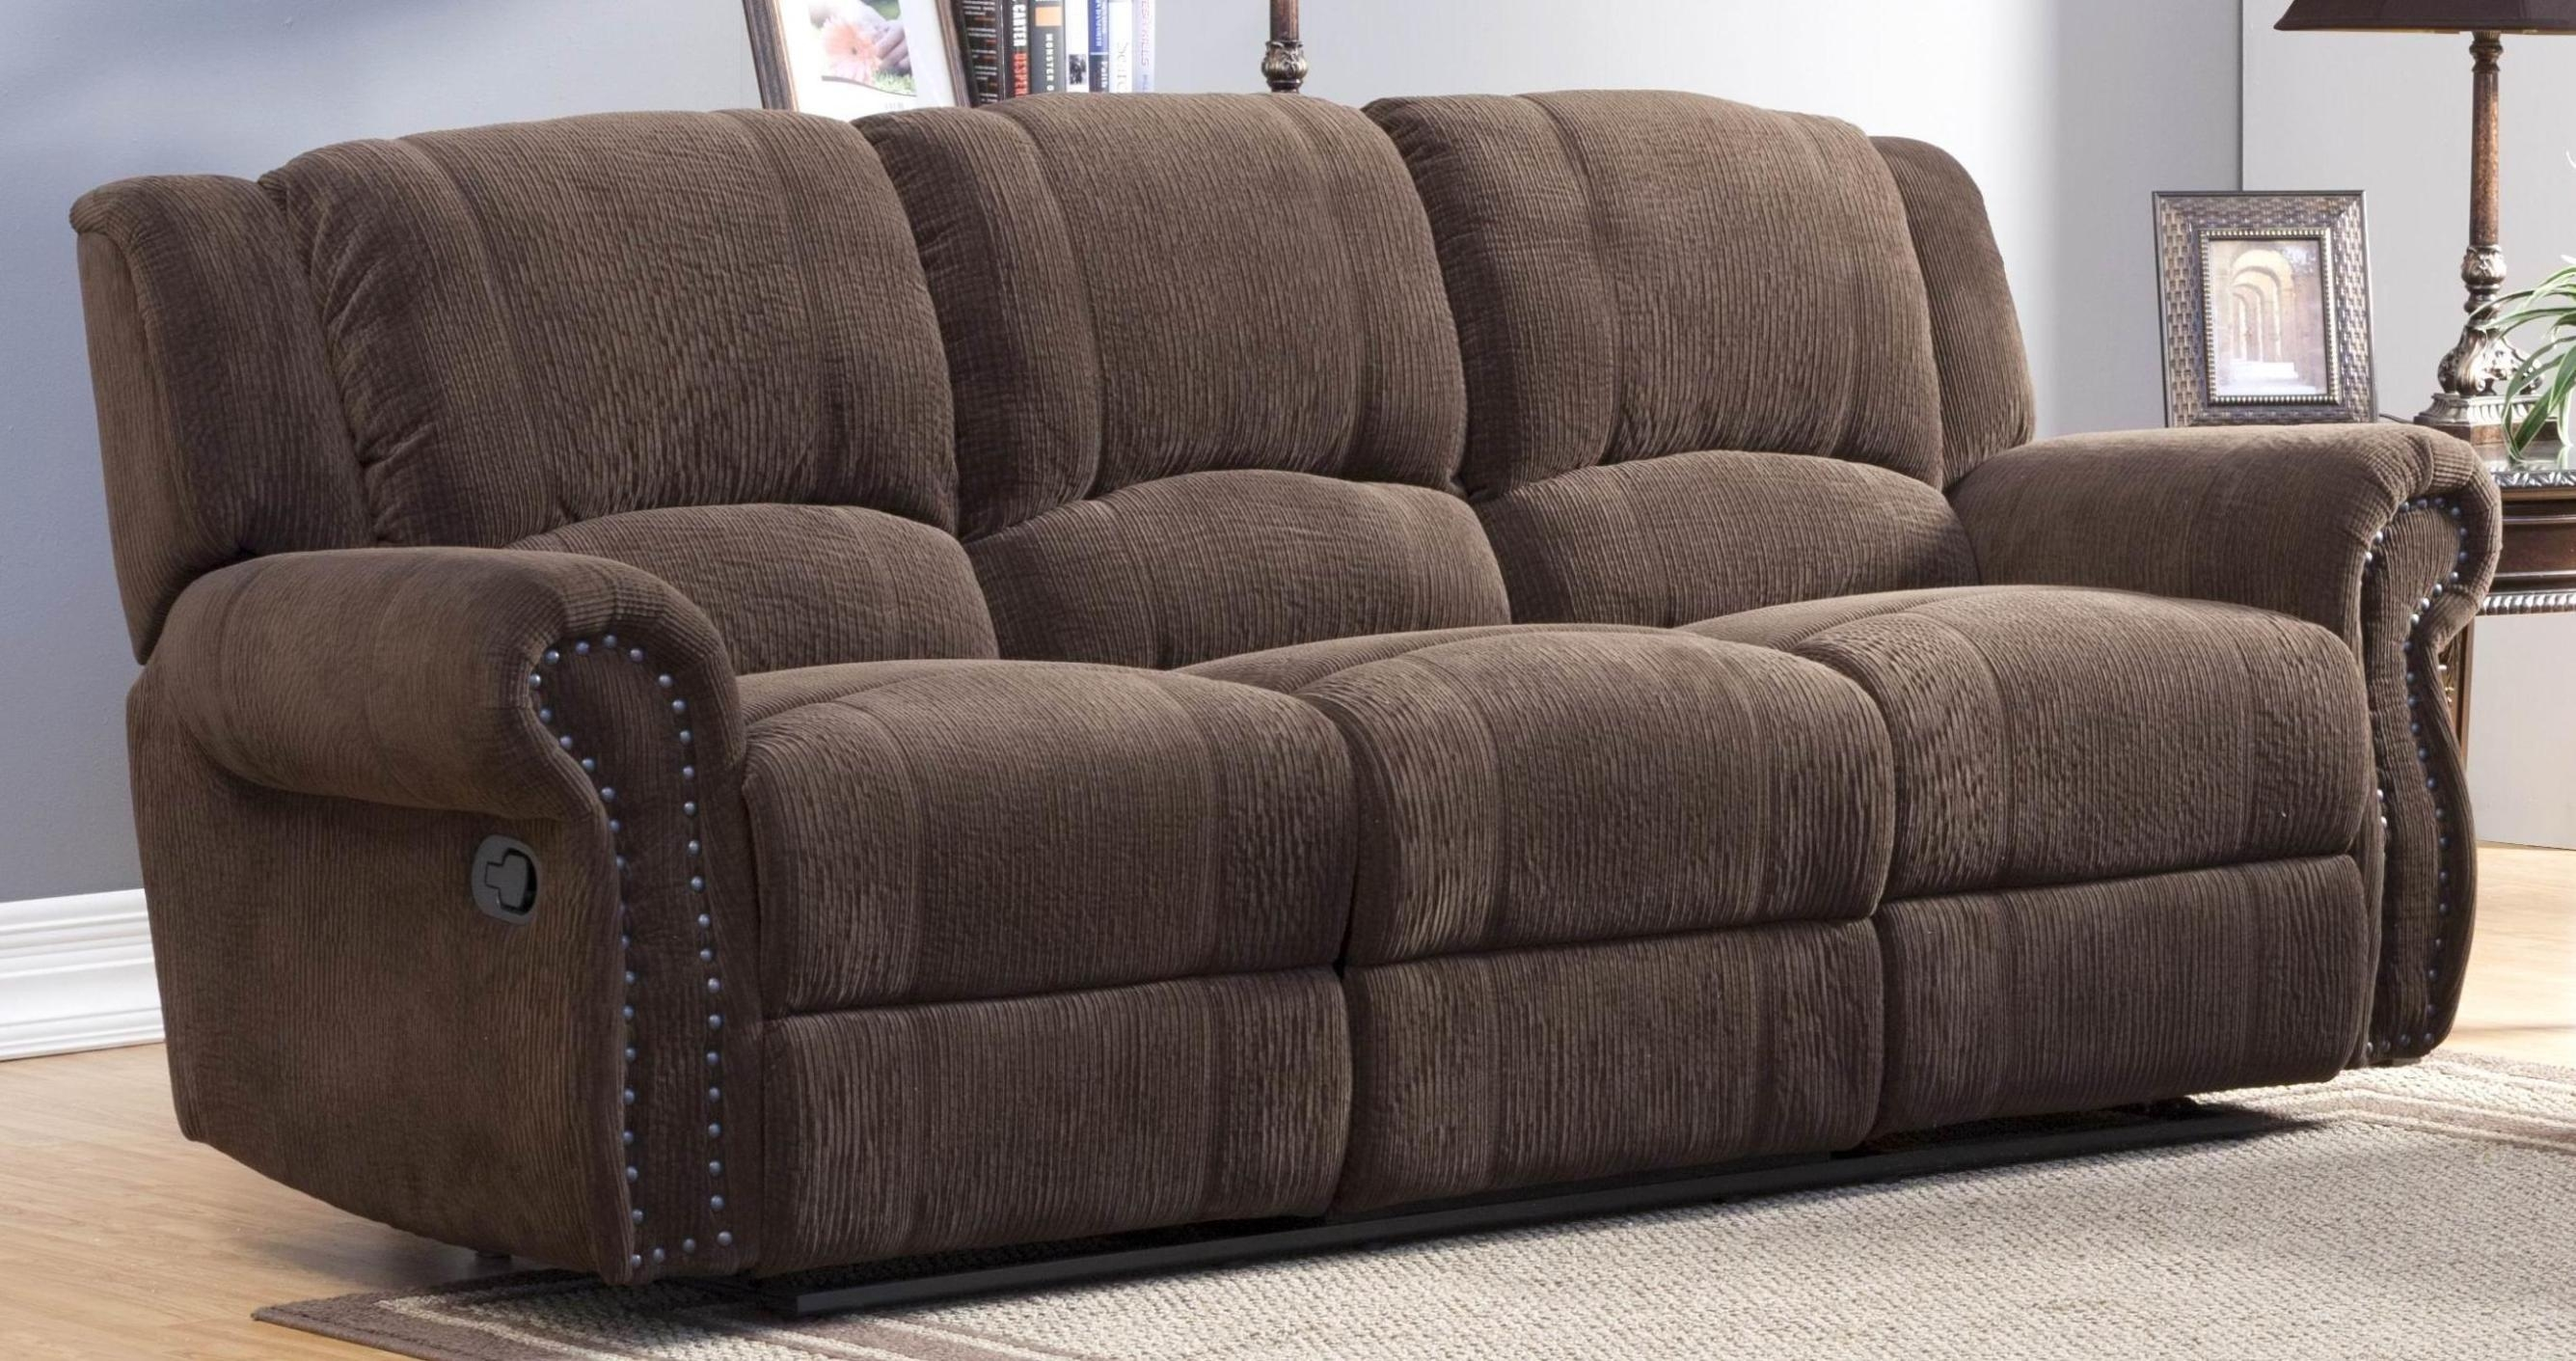 20 Collection of Slipcover for Recliner Sofas Sofa Ideas : furniture slipcovers for couch walmart chair covers sofa intended for slipcover for recliner sofas from tany.net size 2671 x 1411 jpeg 1426kB